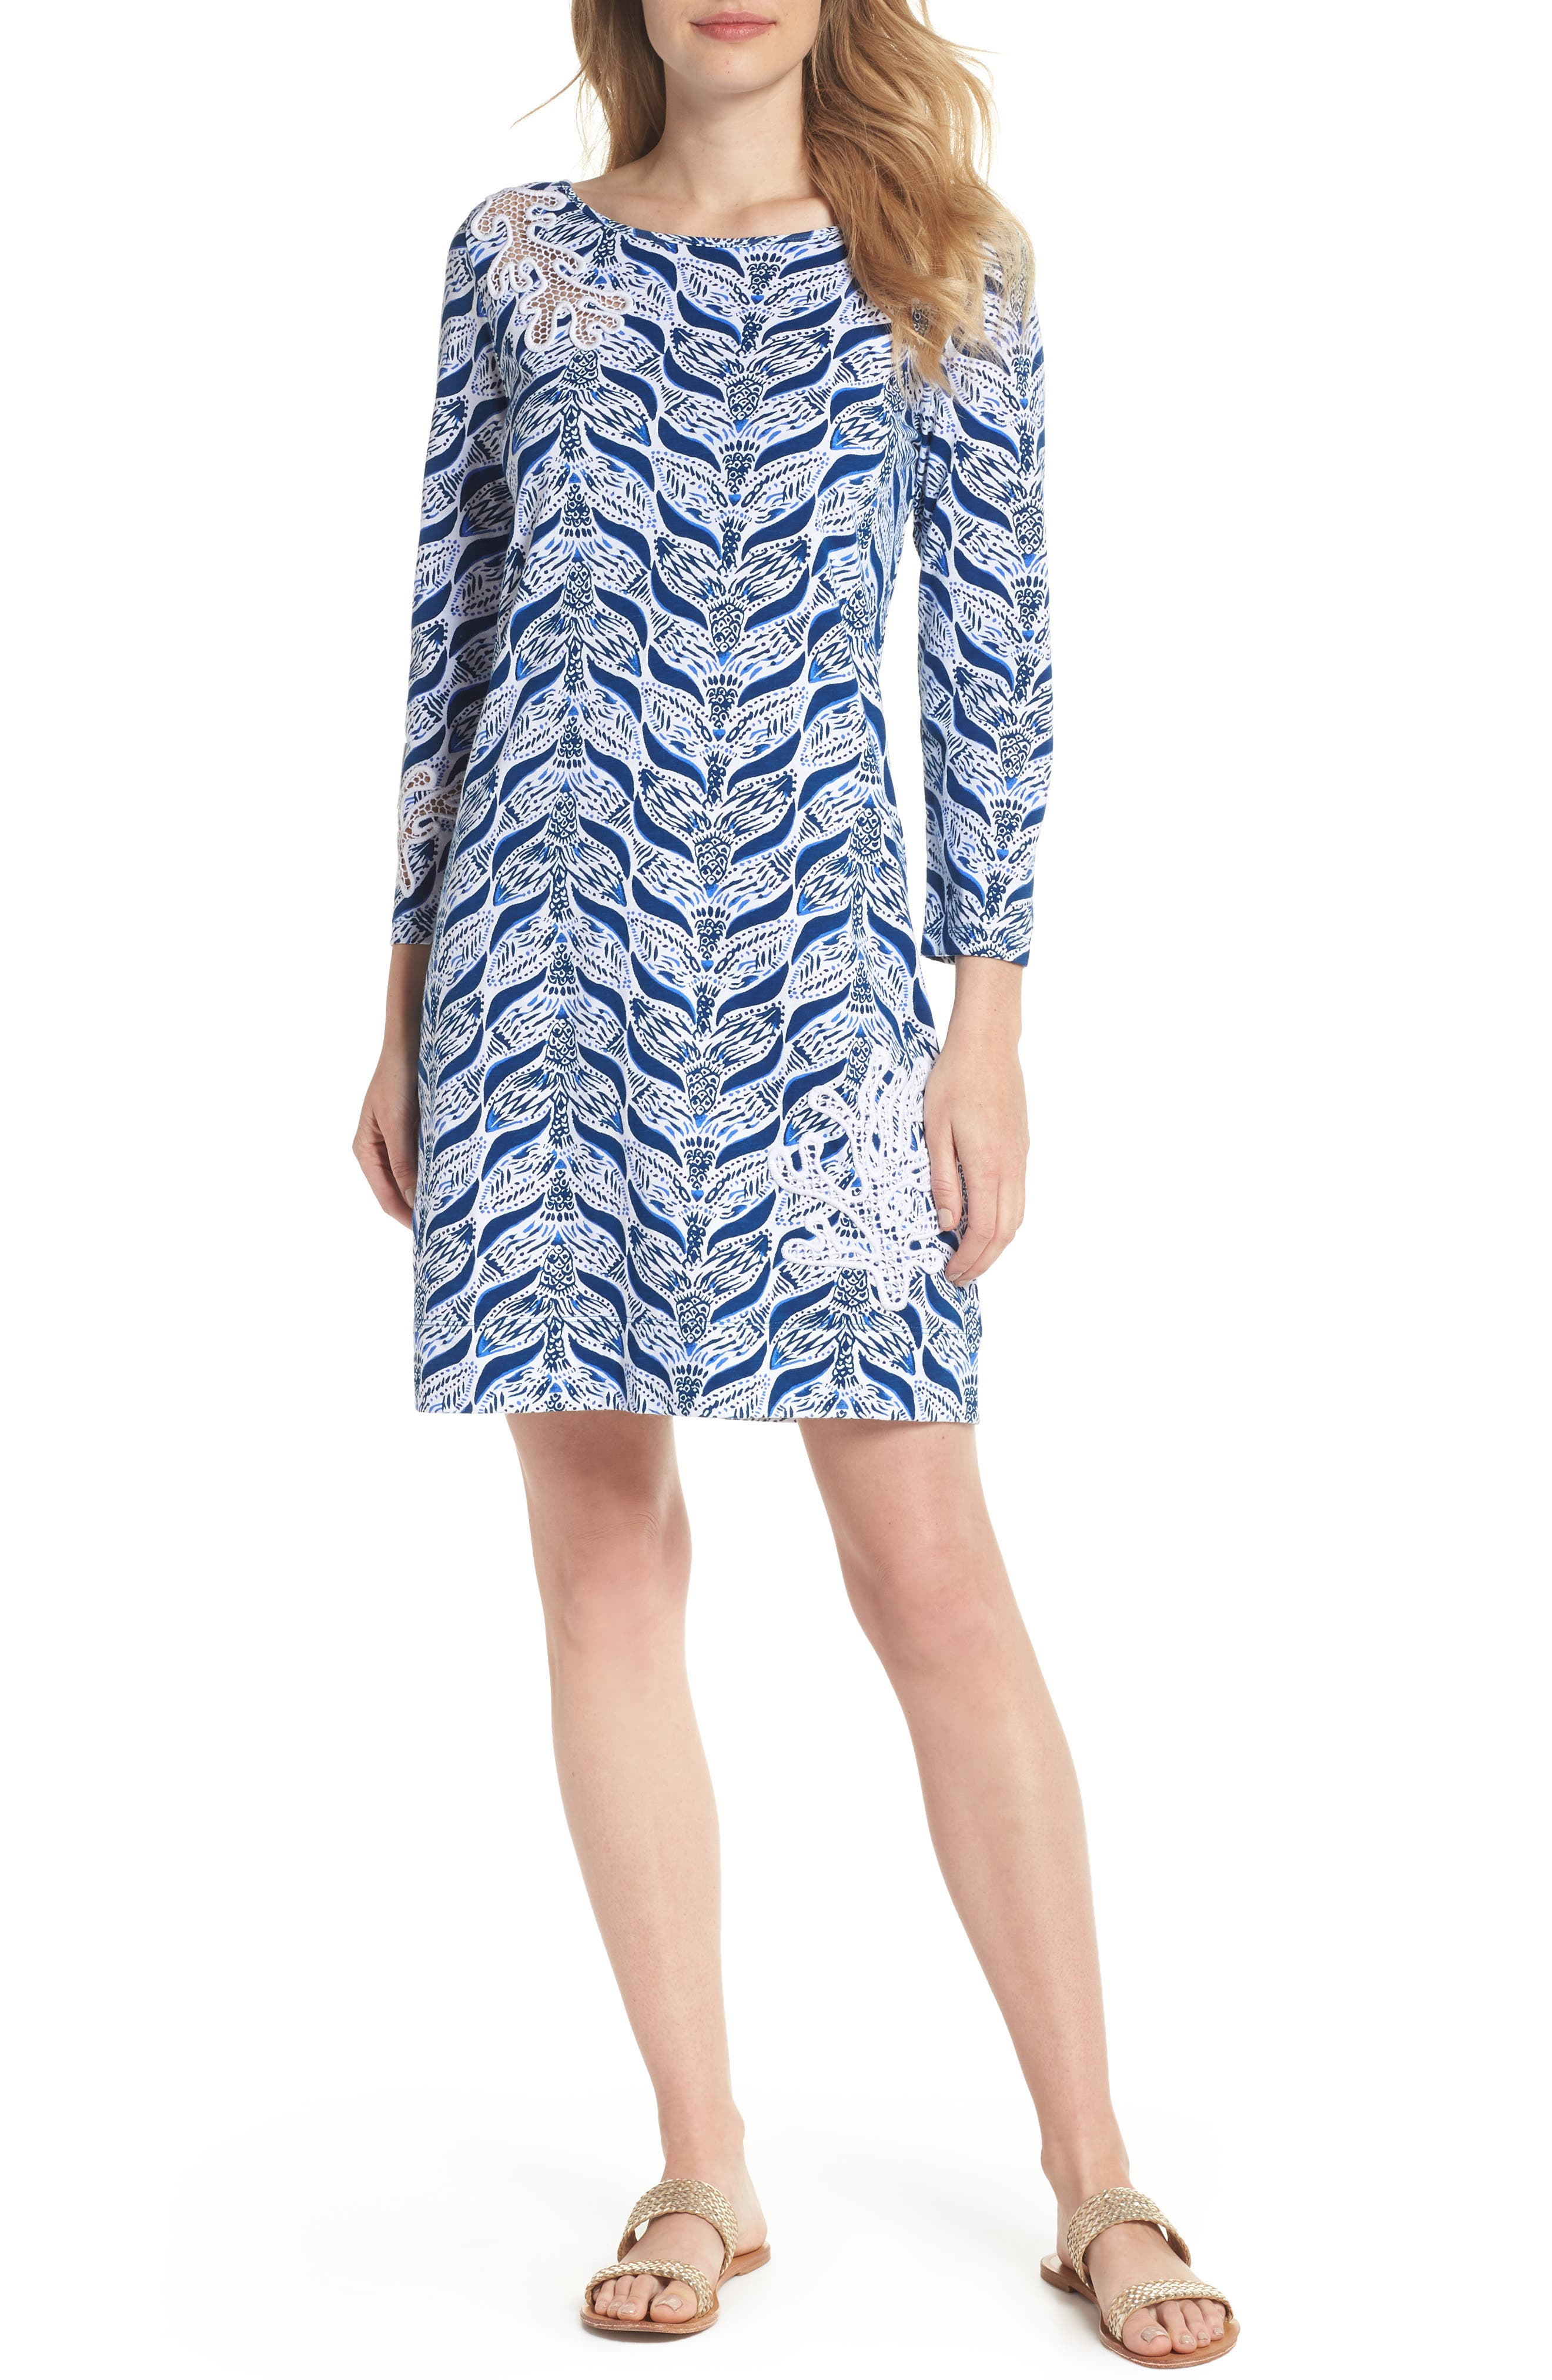 Marlowe T-Shirt Dress,                         Main,                         color, RESORT WHITE A MERMAIDS TAIL